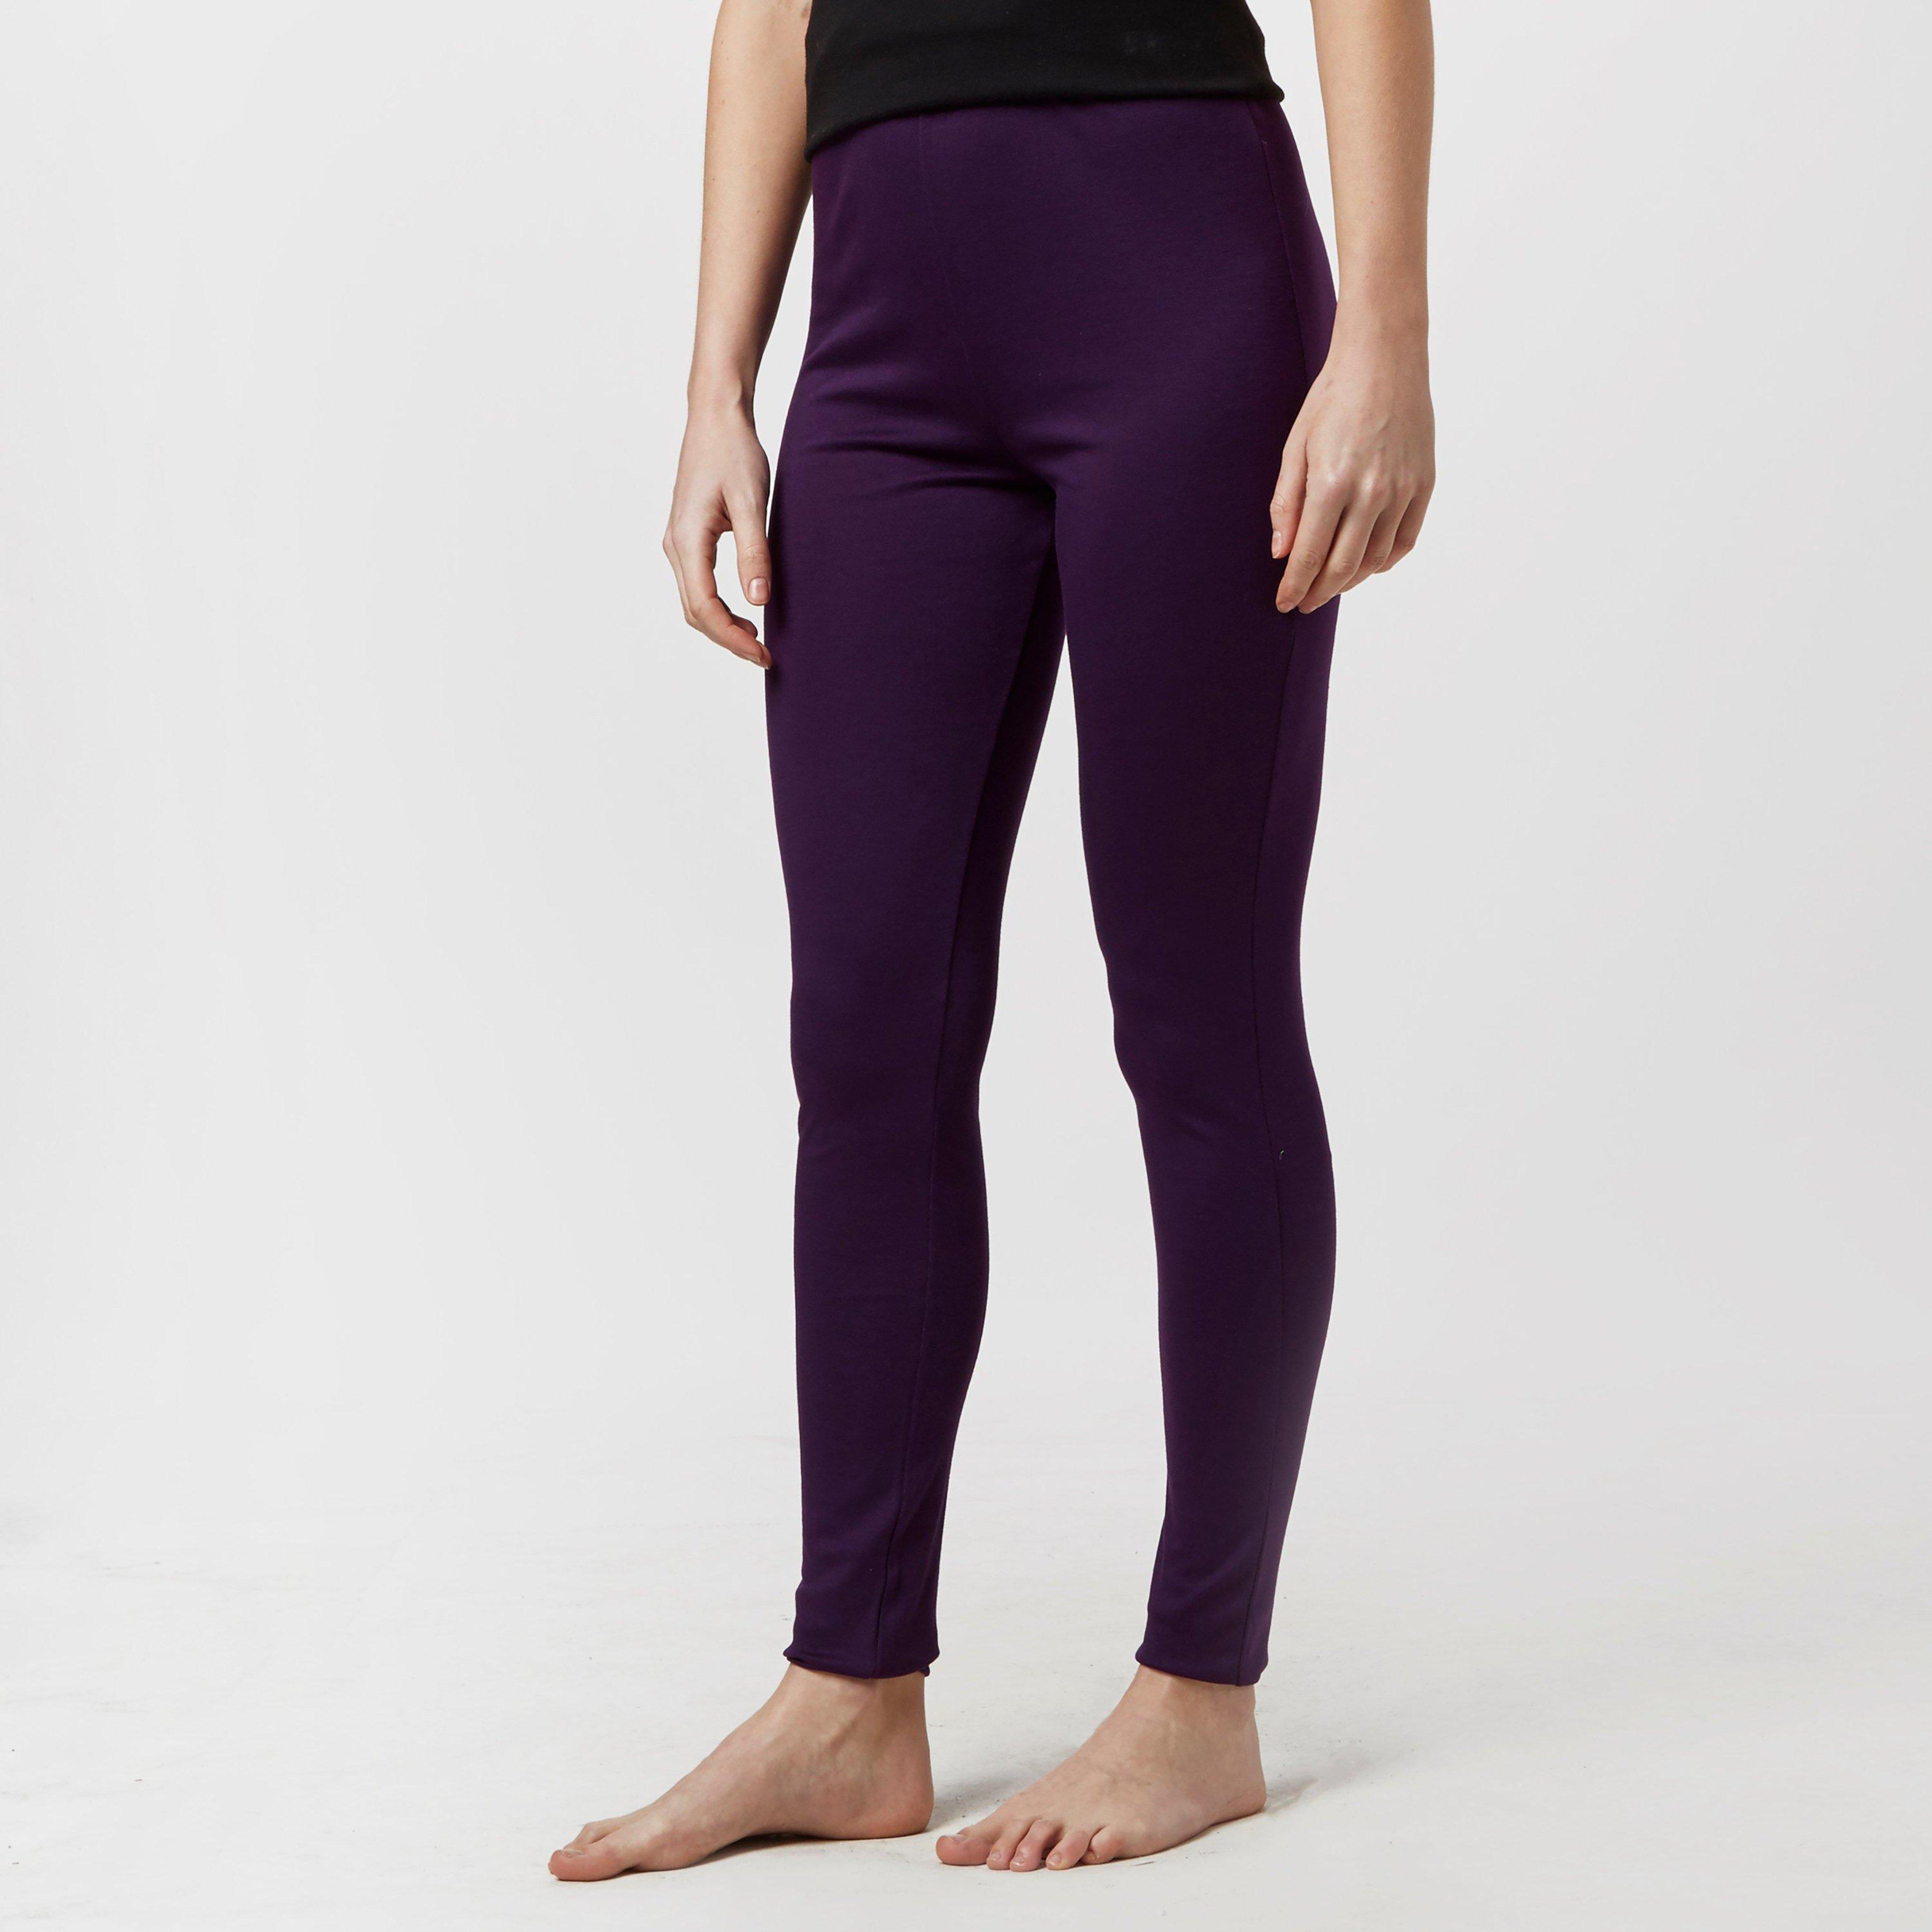 Peter Storm Women's Thermal Base Layer Pants, Purple